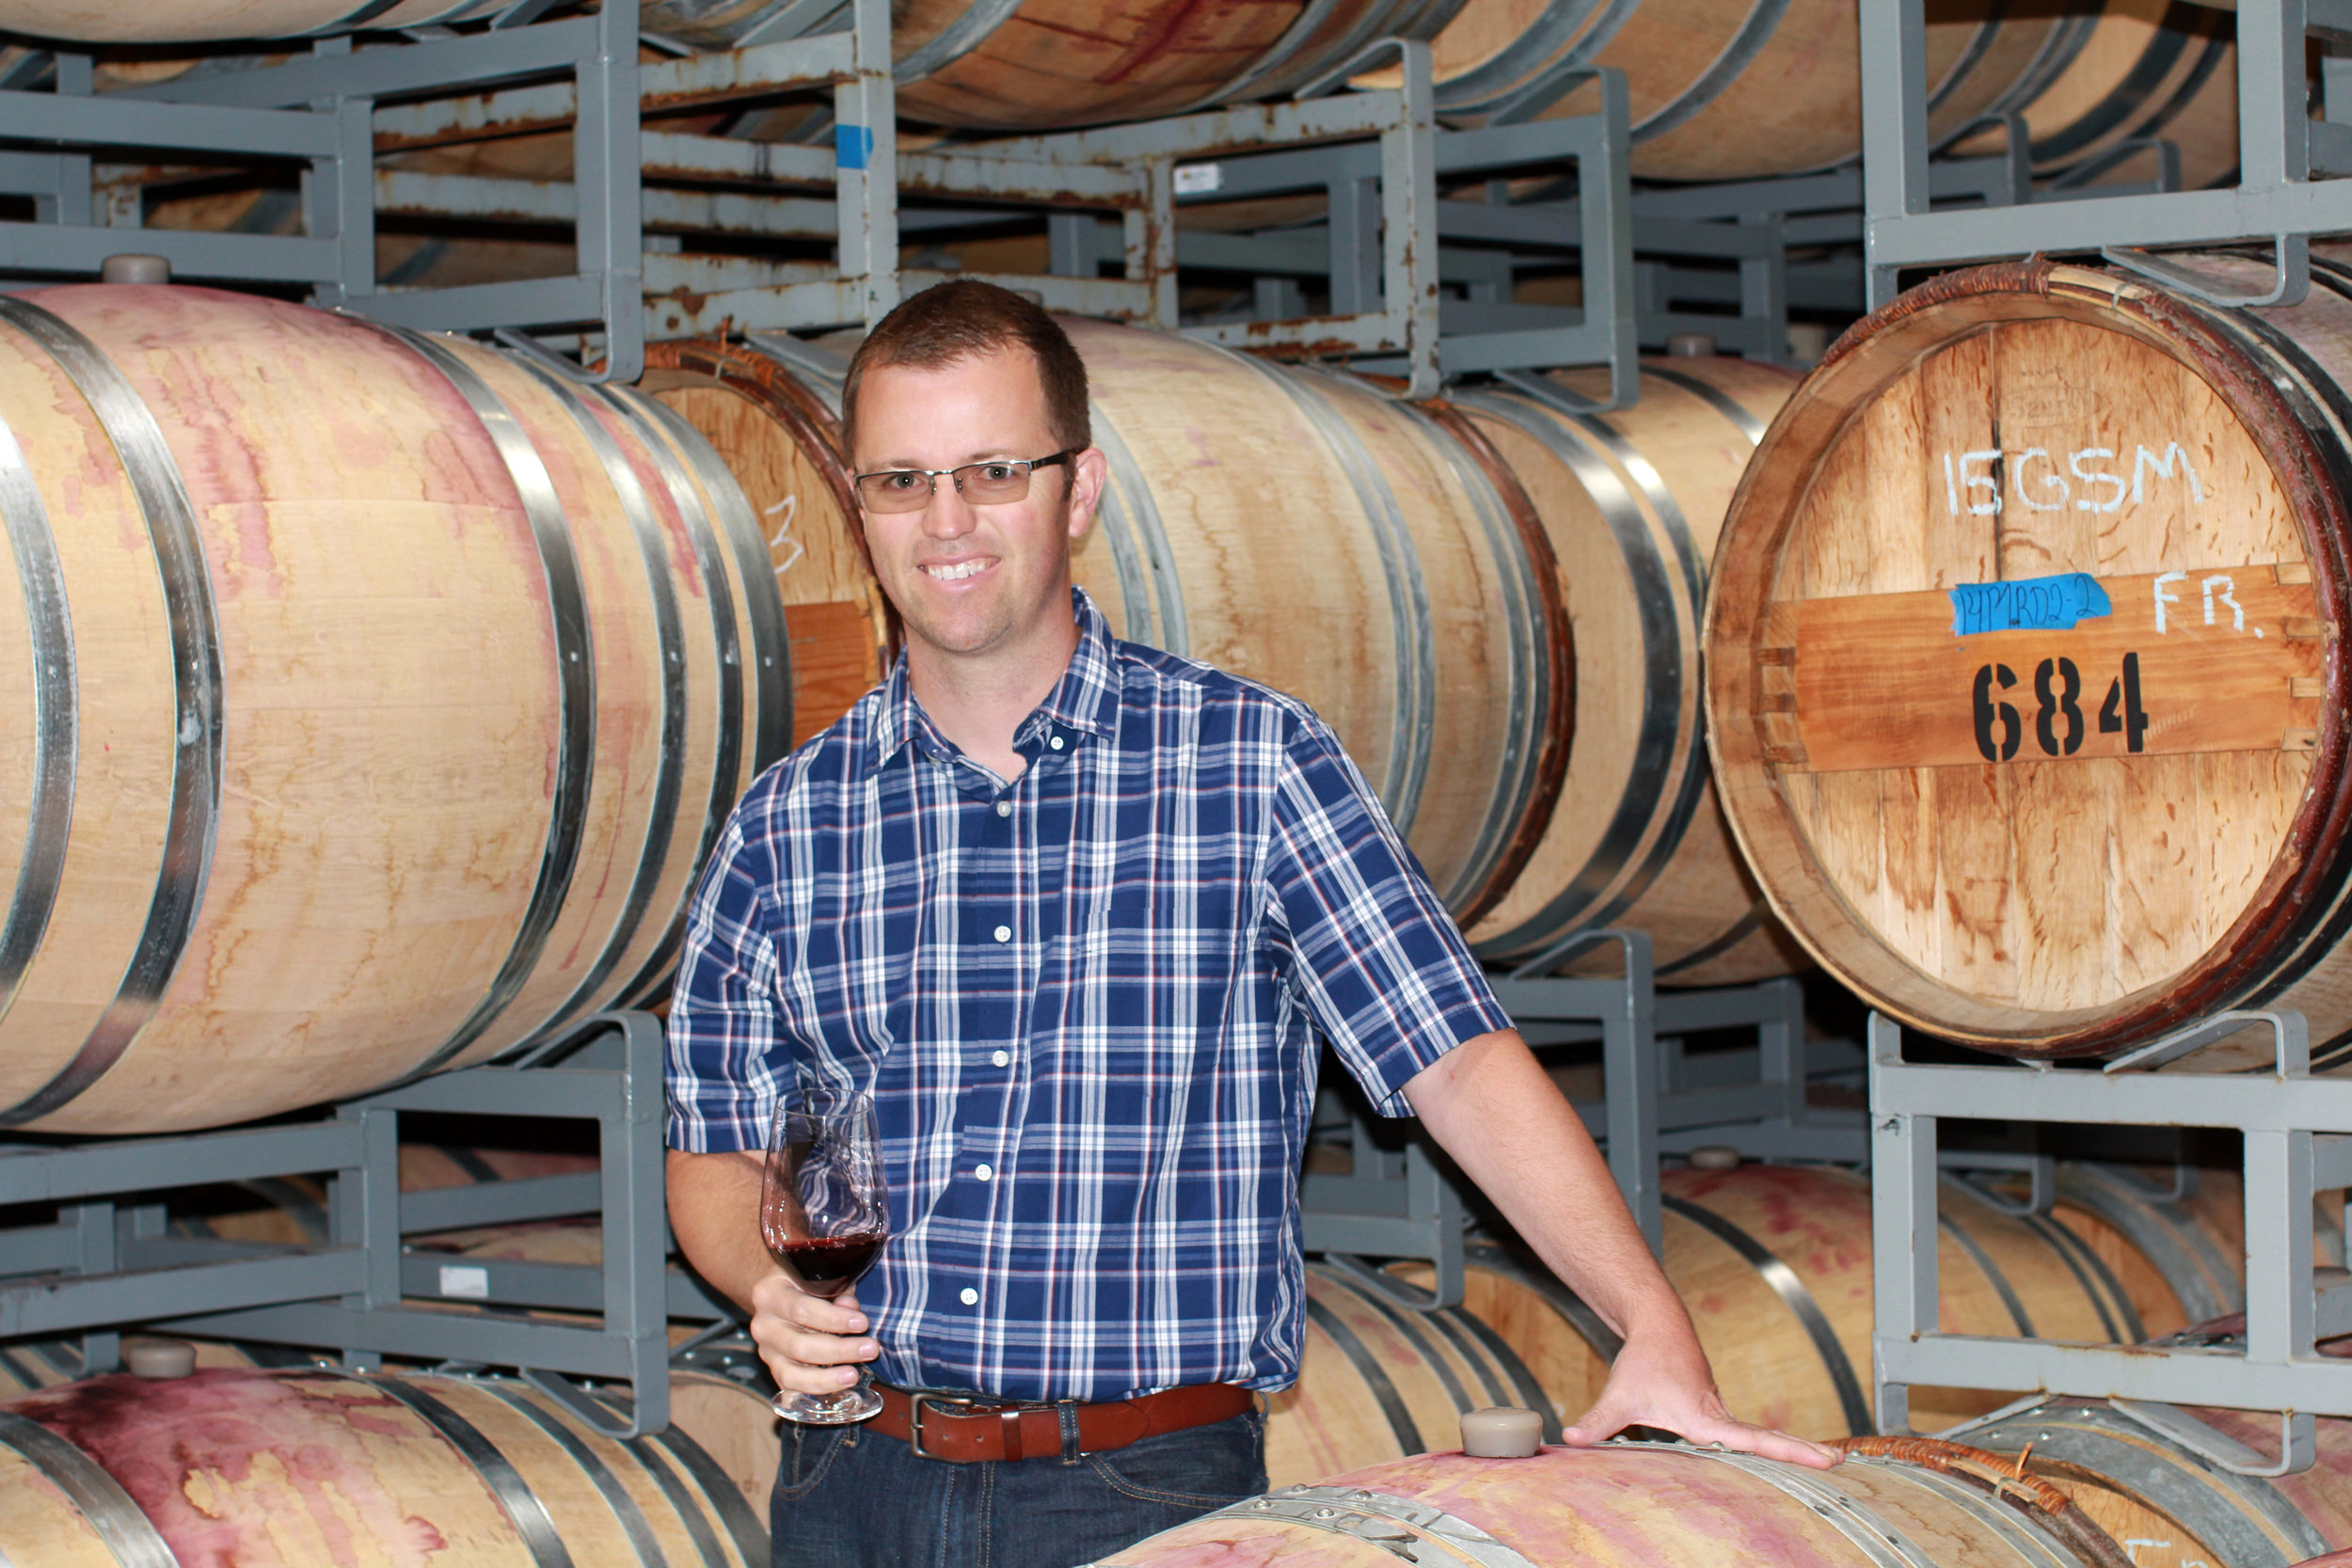 Marcus Miller crafts some really good wines for his family winery, Airfield Estates.